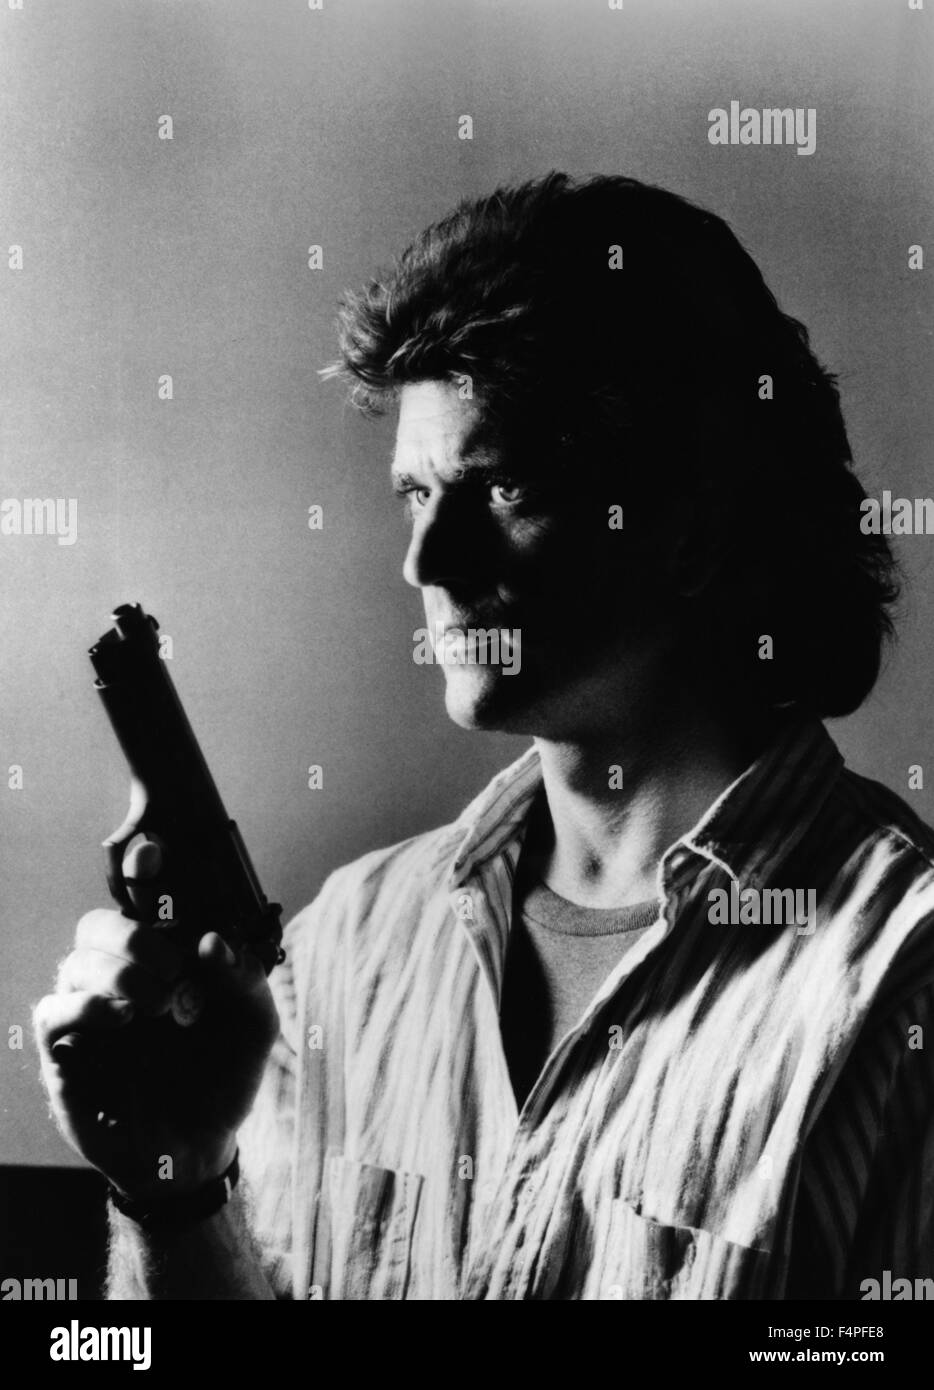 Mel Gibson / Lethal Weapon / 1987 directed by Richard Donner - Stock Image